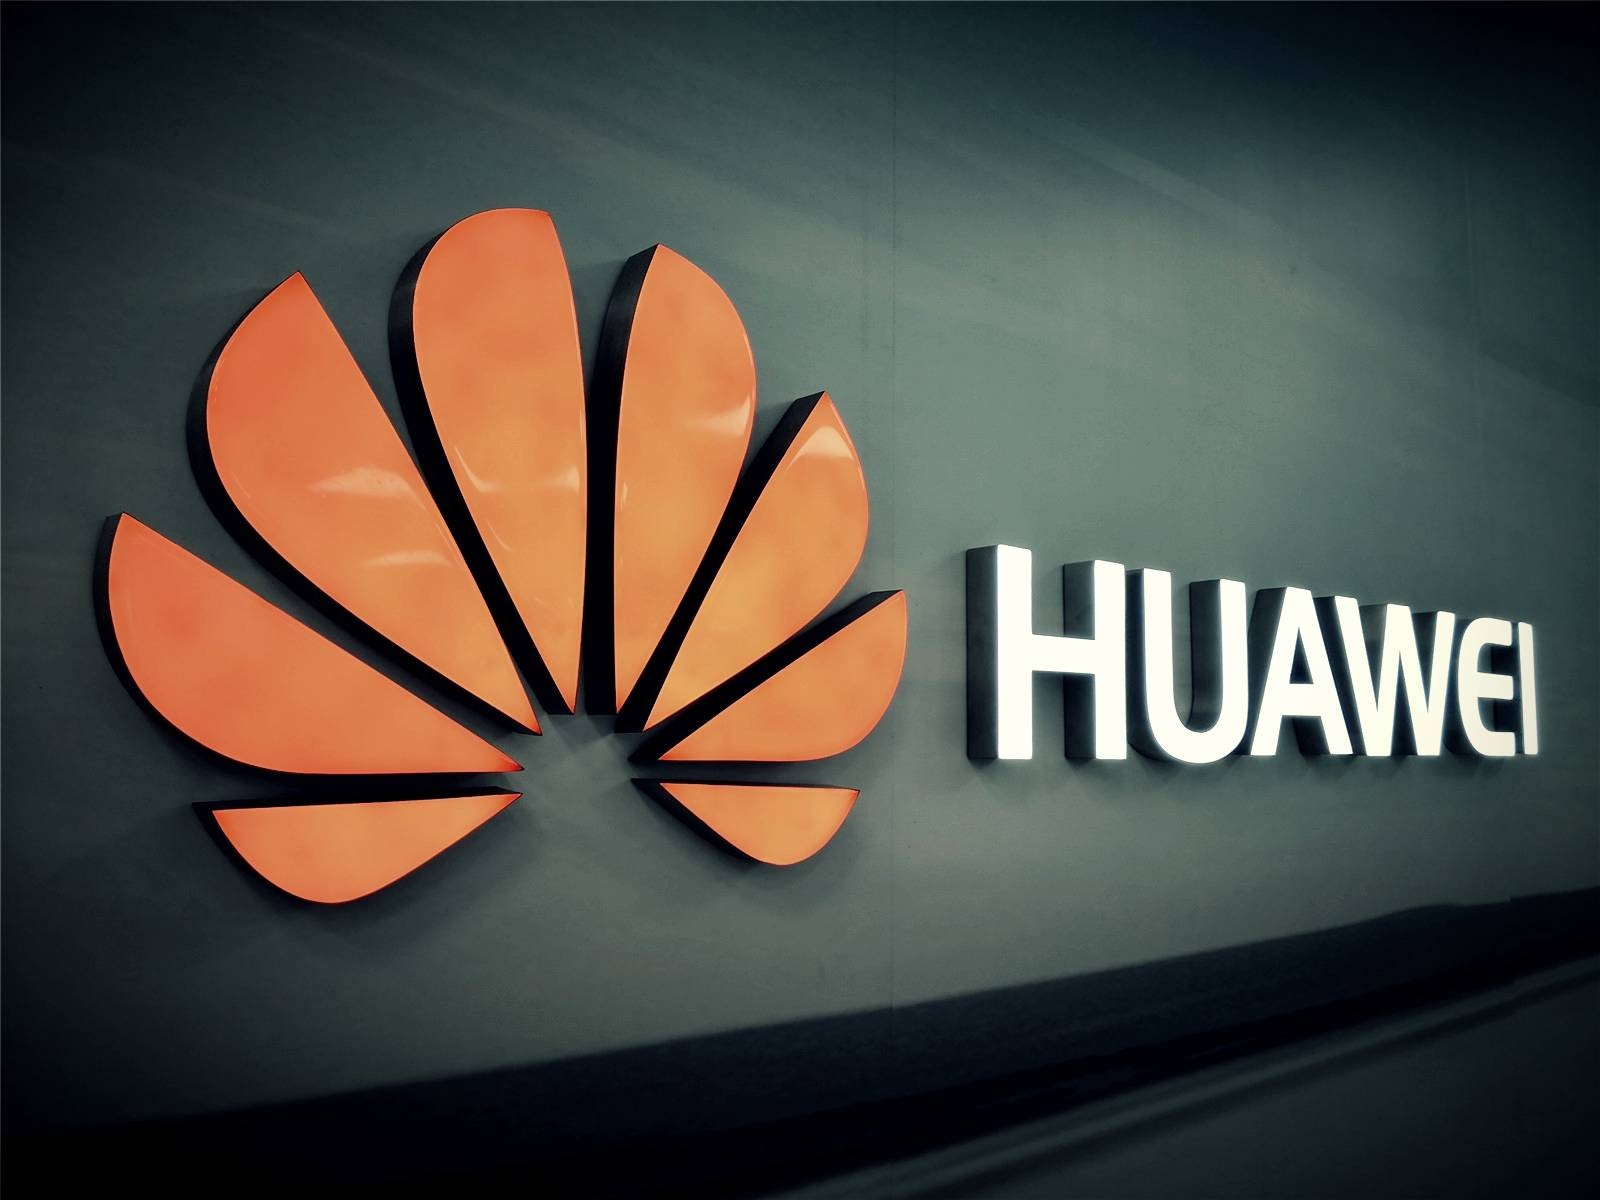 Huawei Helio P35 new machine exposure: suspected to enjoy a series of 5000mAh large battery blessing